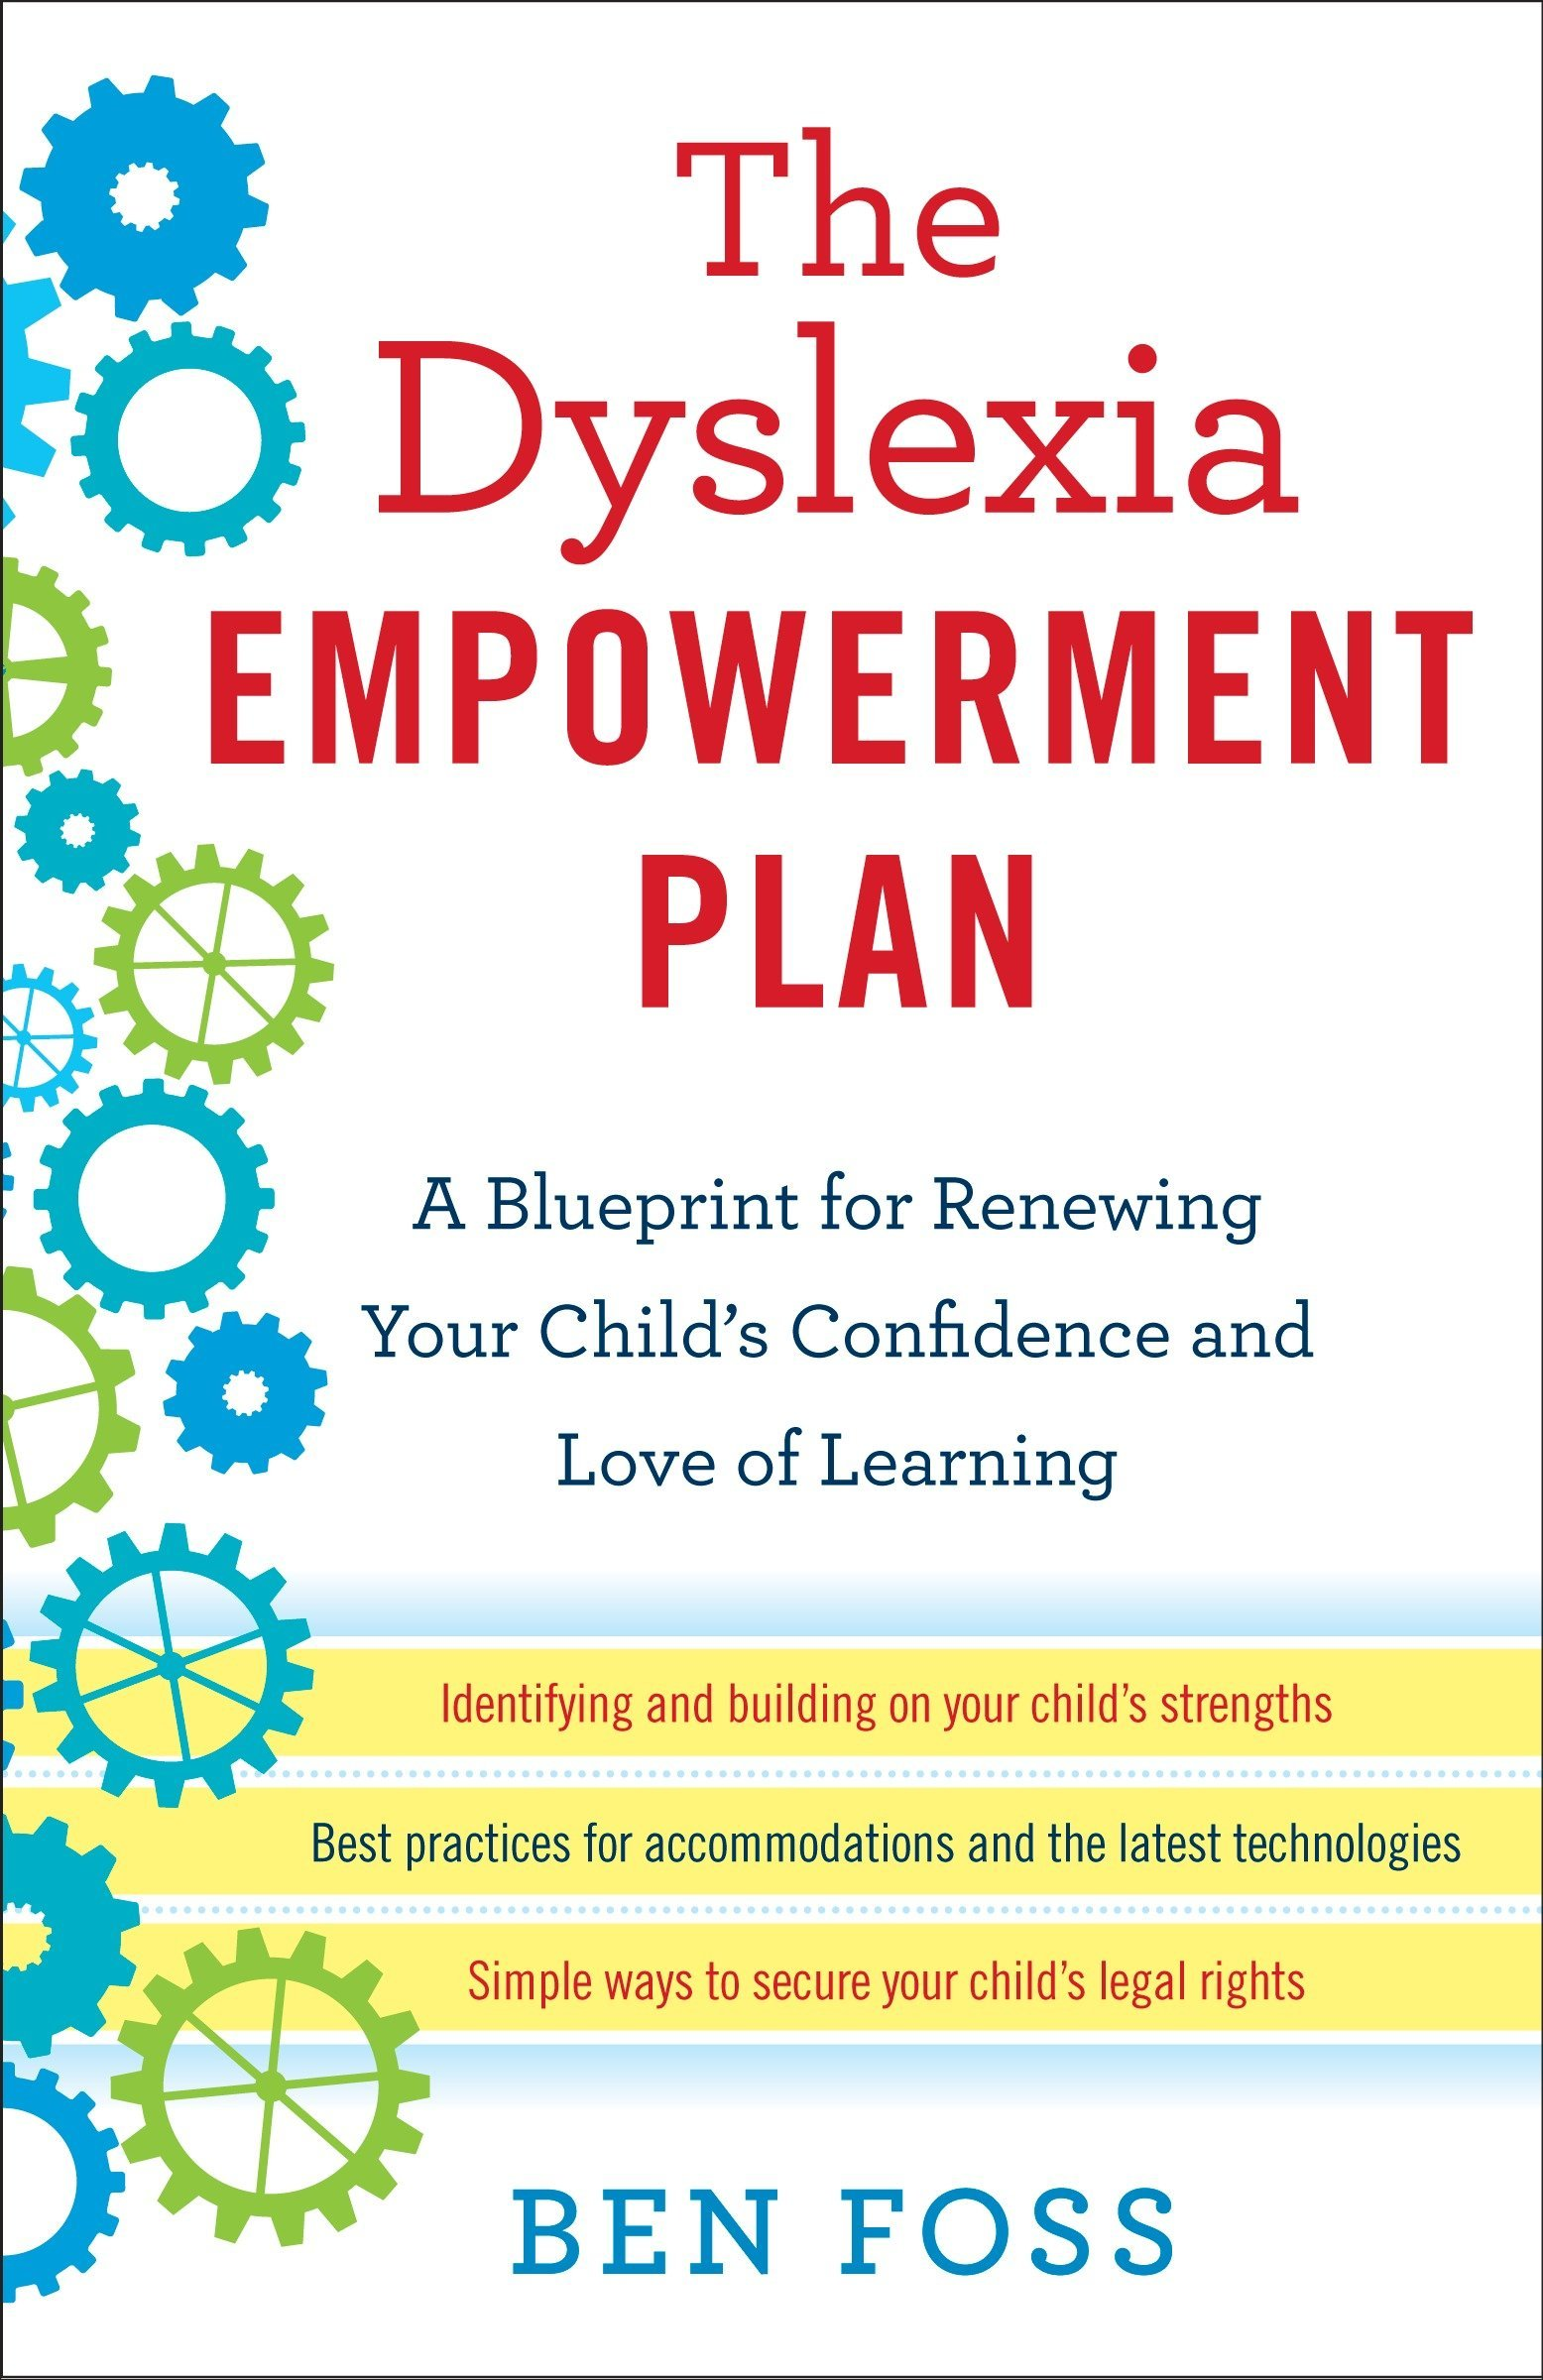 The Dyslexia Empowerment Plan A Blueprint For Renewing Your Childs Confidence And Love Of Learning Ben Foss 9780345541253 Amazon Com Books